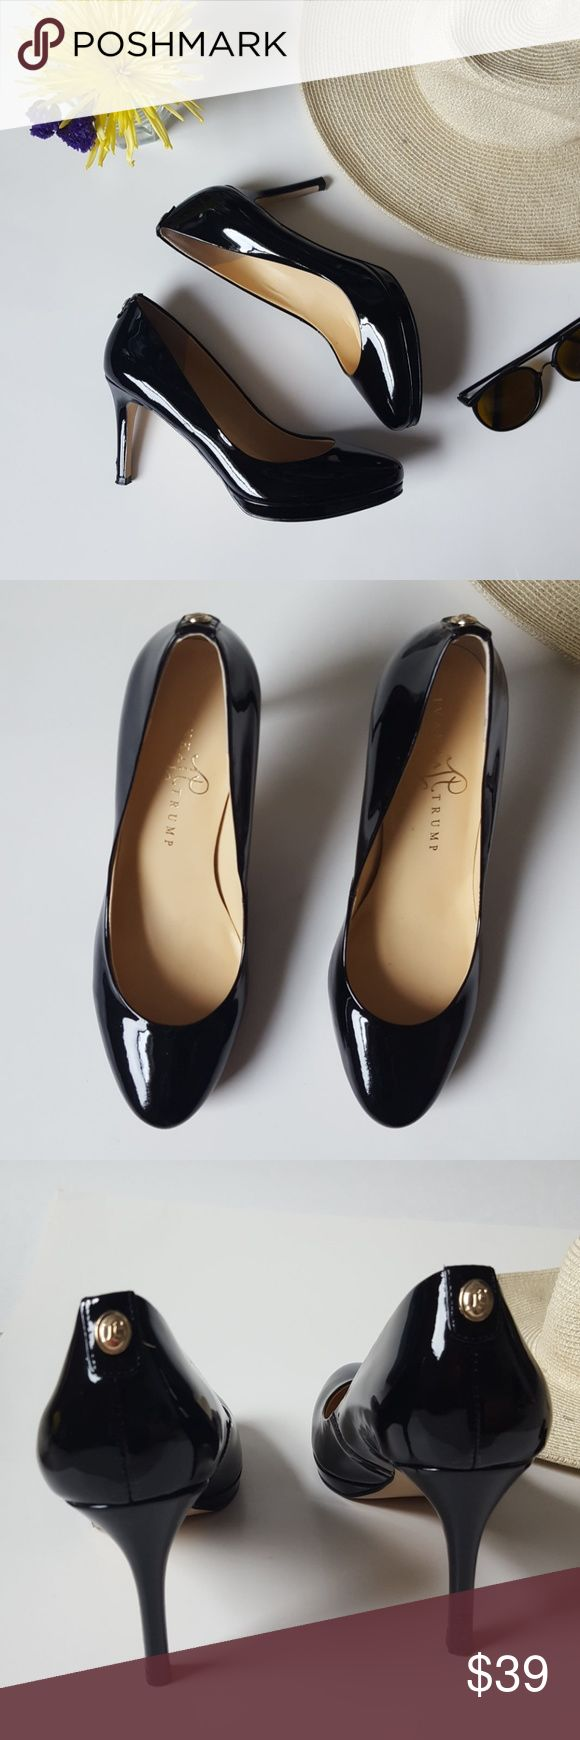 Ivanka Trump   black heels   7 In good condition! Ivanka Trump heels, size 7. Black patent leather. Small imperfection shown on back right heel. Otherwise perfect condition! Used item, some signs of wear shown by pictures ❤ Bundle up! Offers always welcome:) Ivanka Trump Shoes